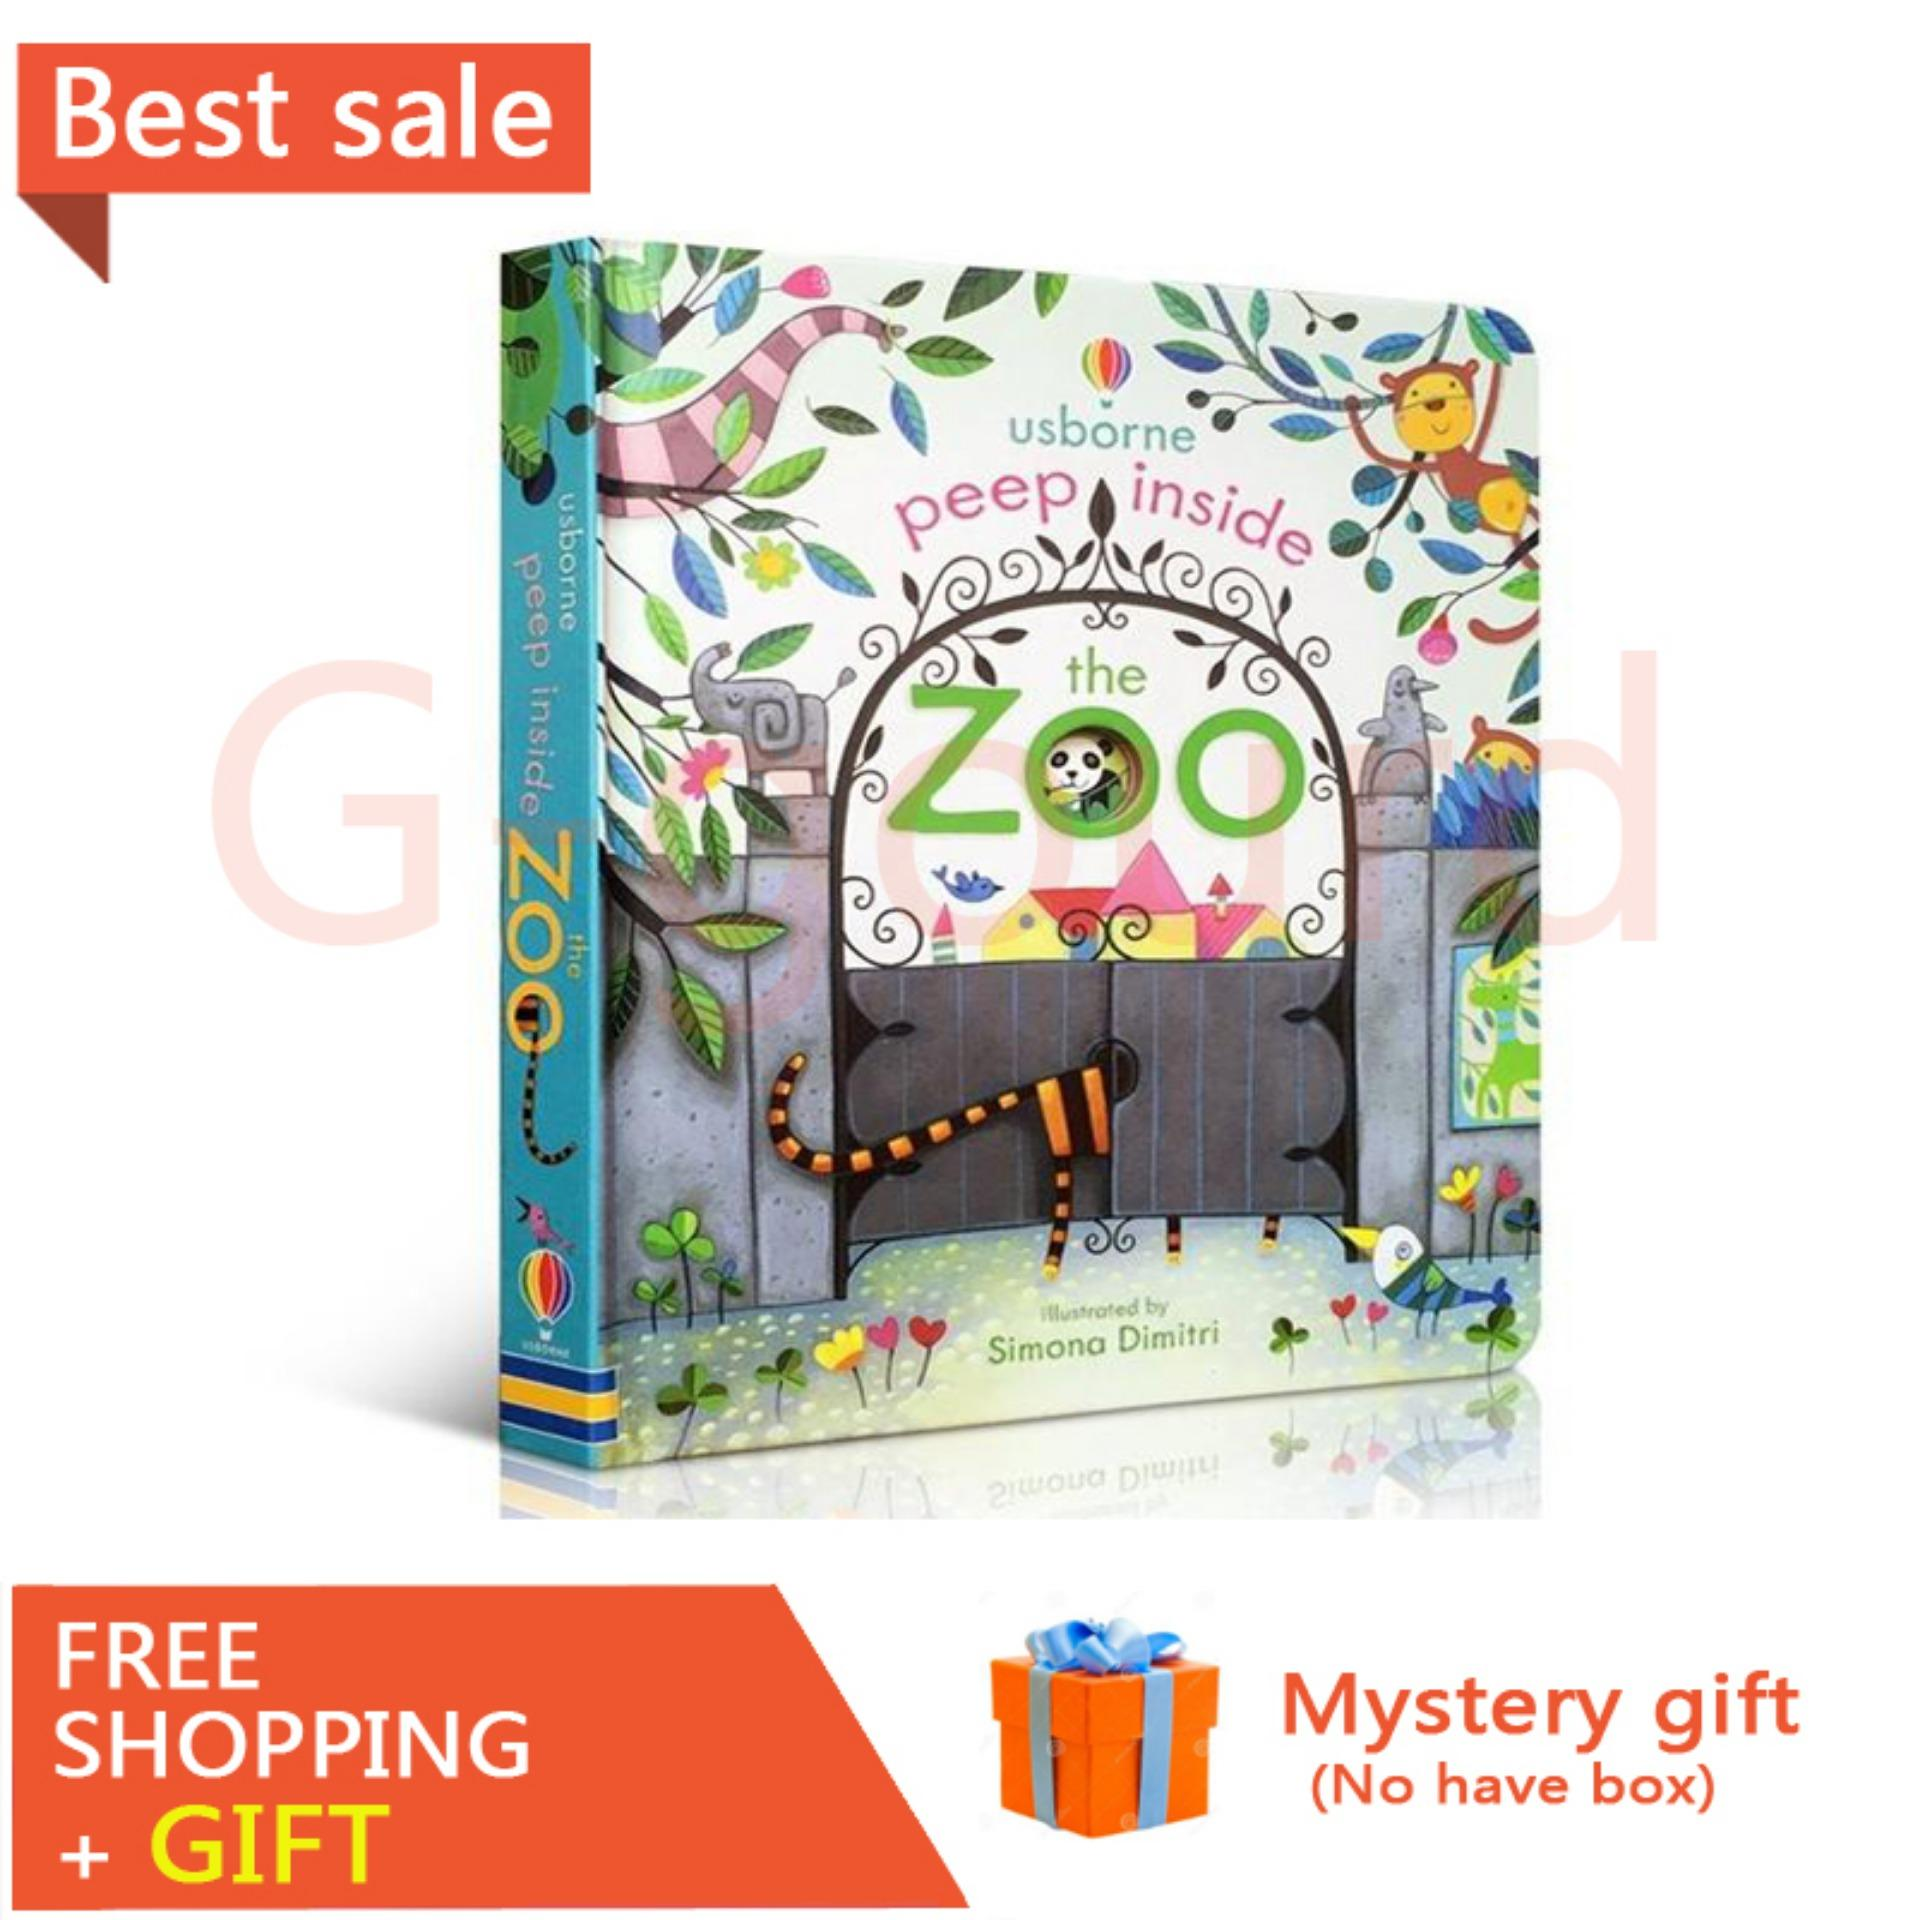 Peep Inside The Zoo Animal English Educational Flap Picture Books Baby Early Childhood Gift For Kids Libros